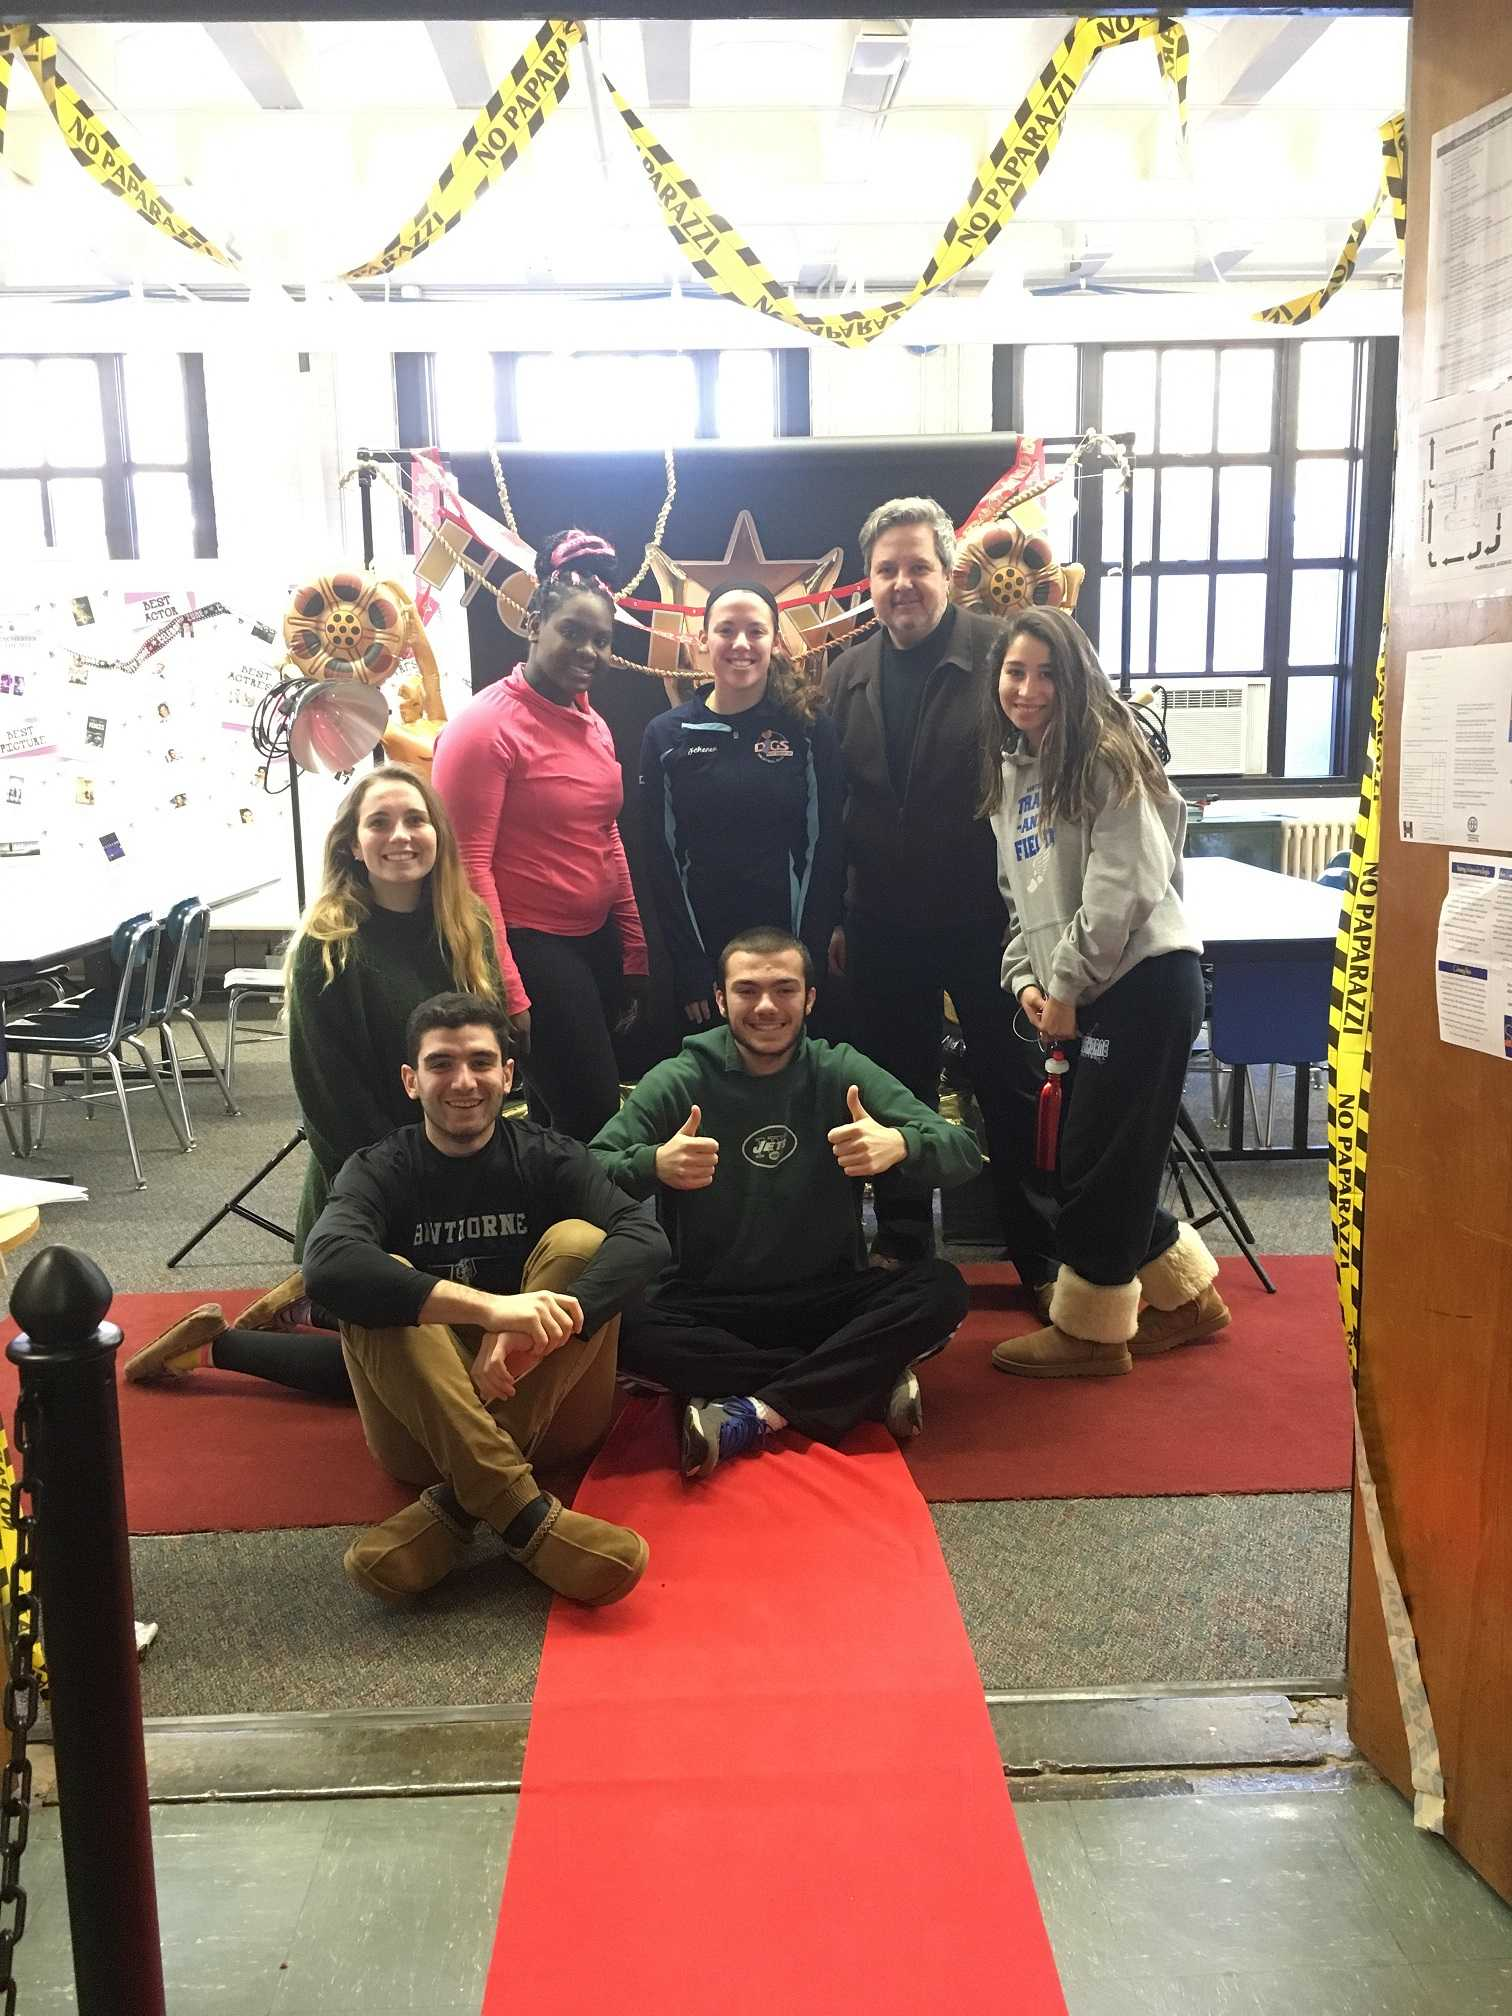 Advanced Media Arts students and Student Council president pose on the red carpet with Media Arts teacher John DiLonardo